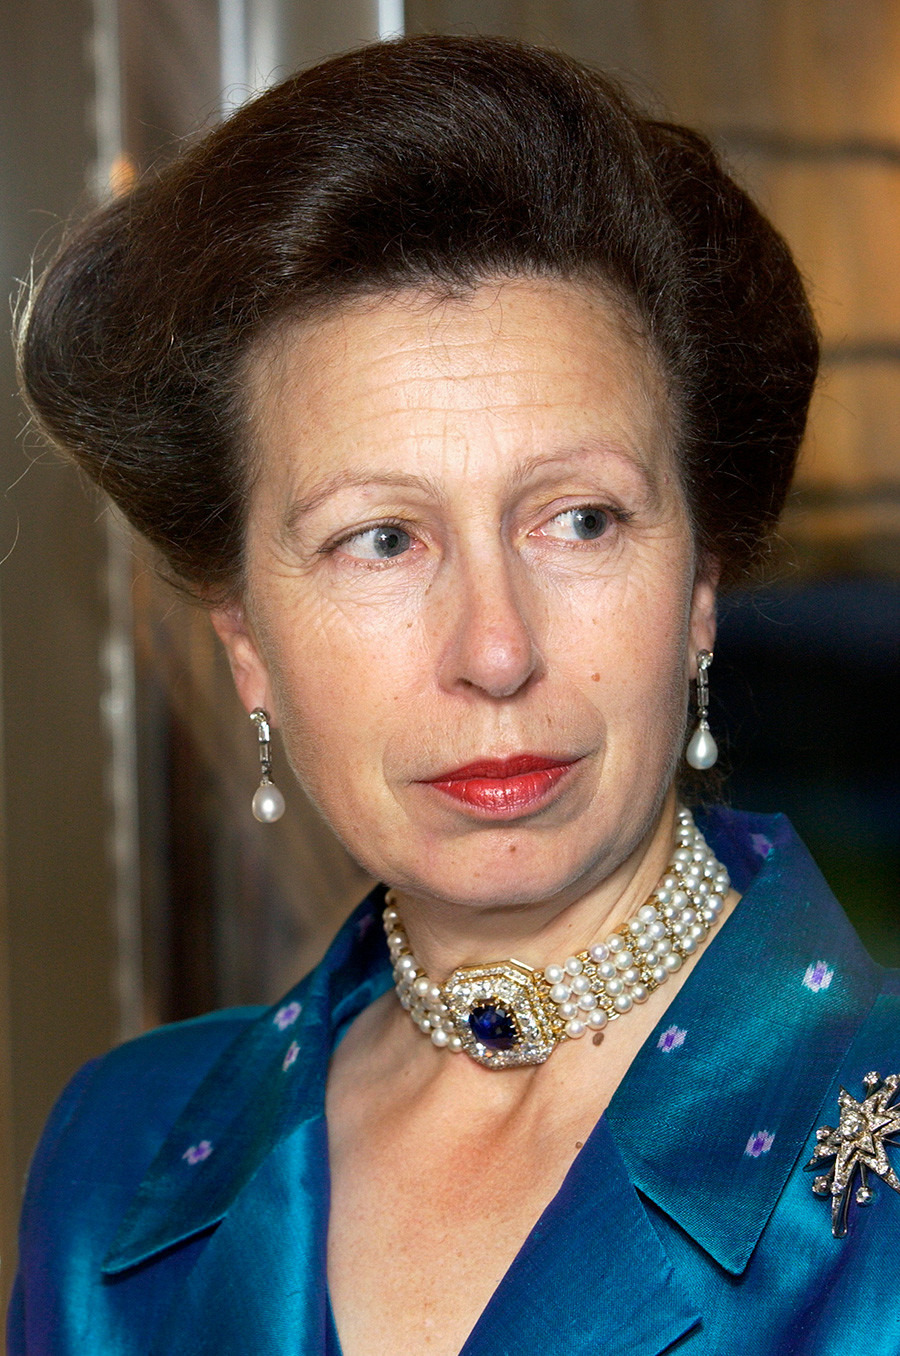 Princess Anne at the Royal Victoria Dock in East London, 2003.